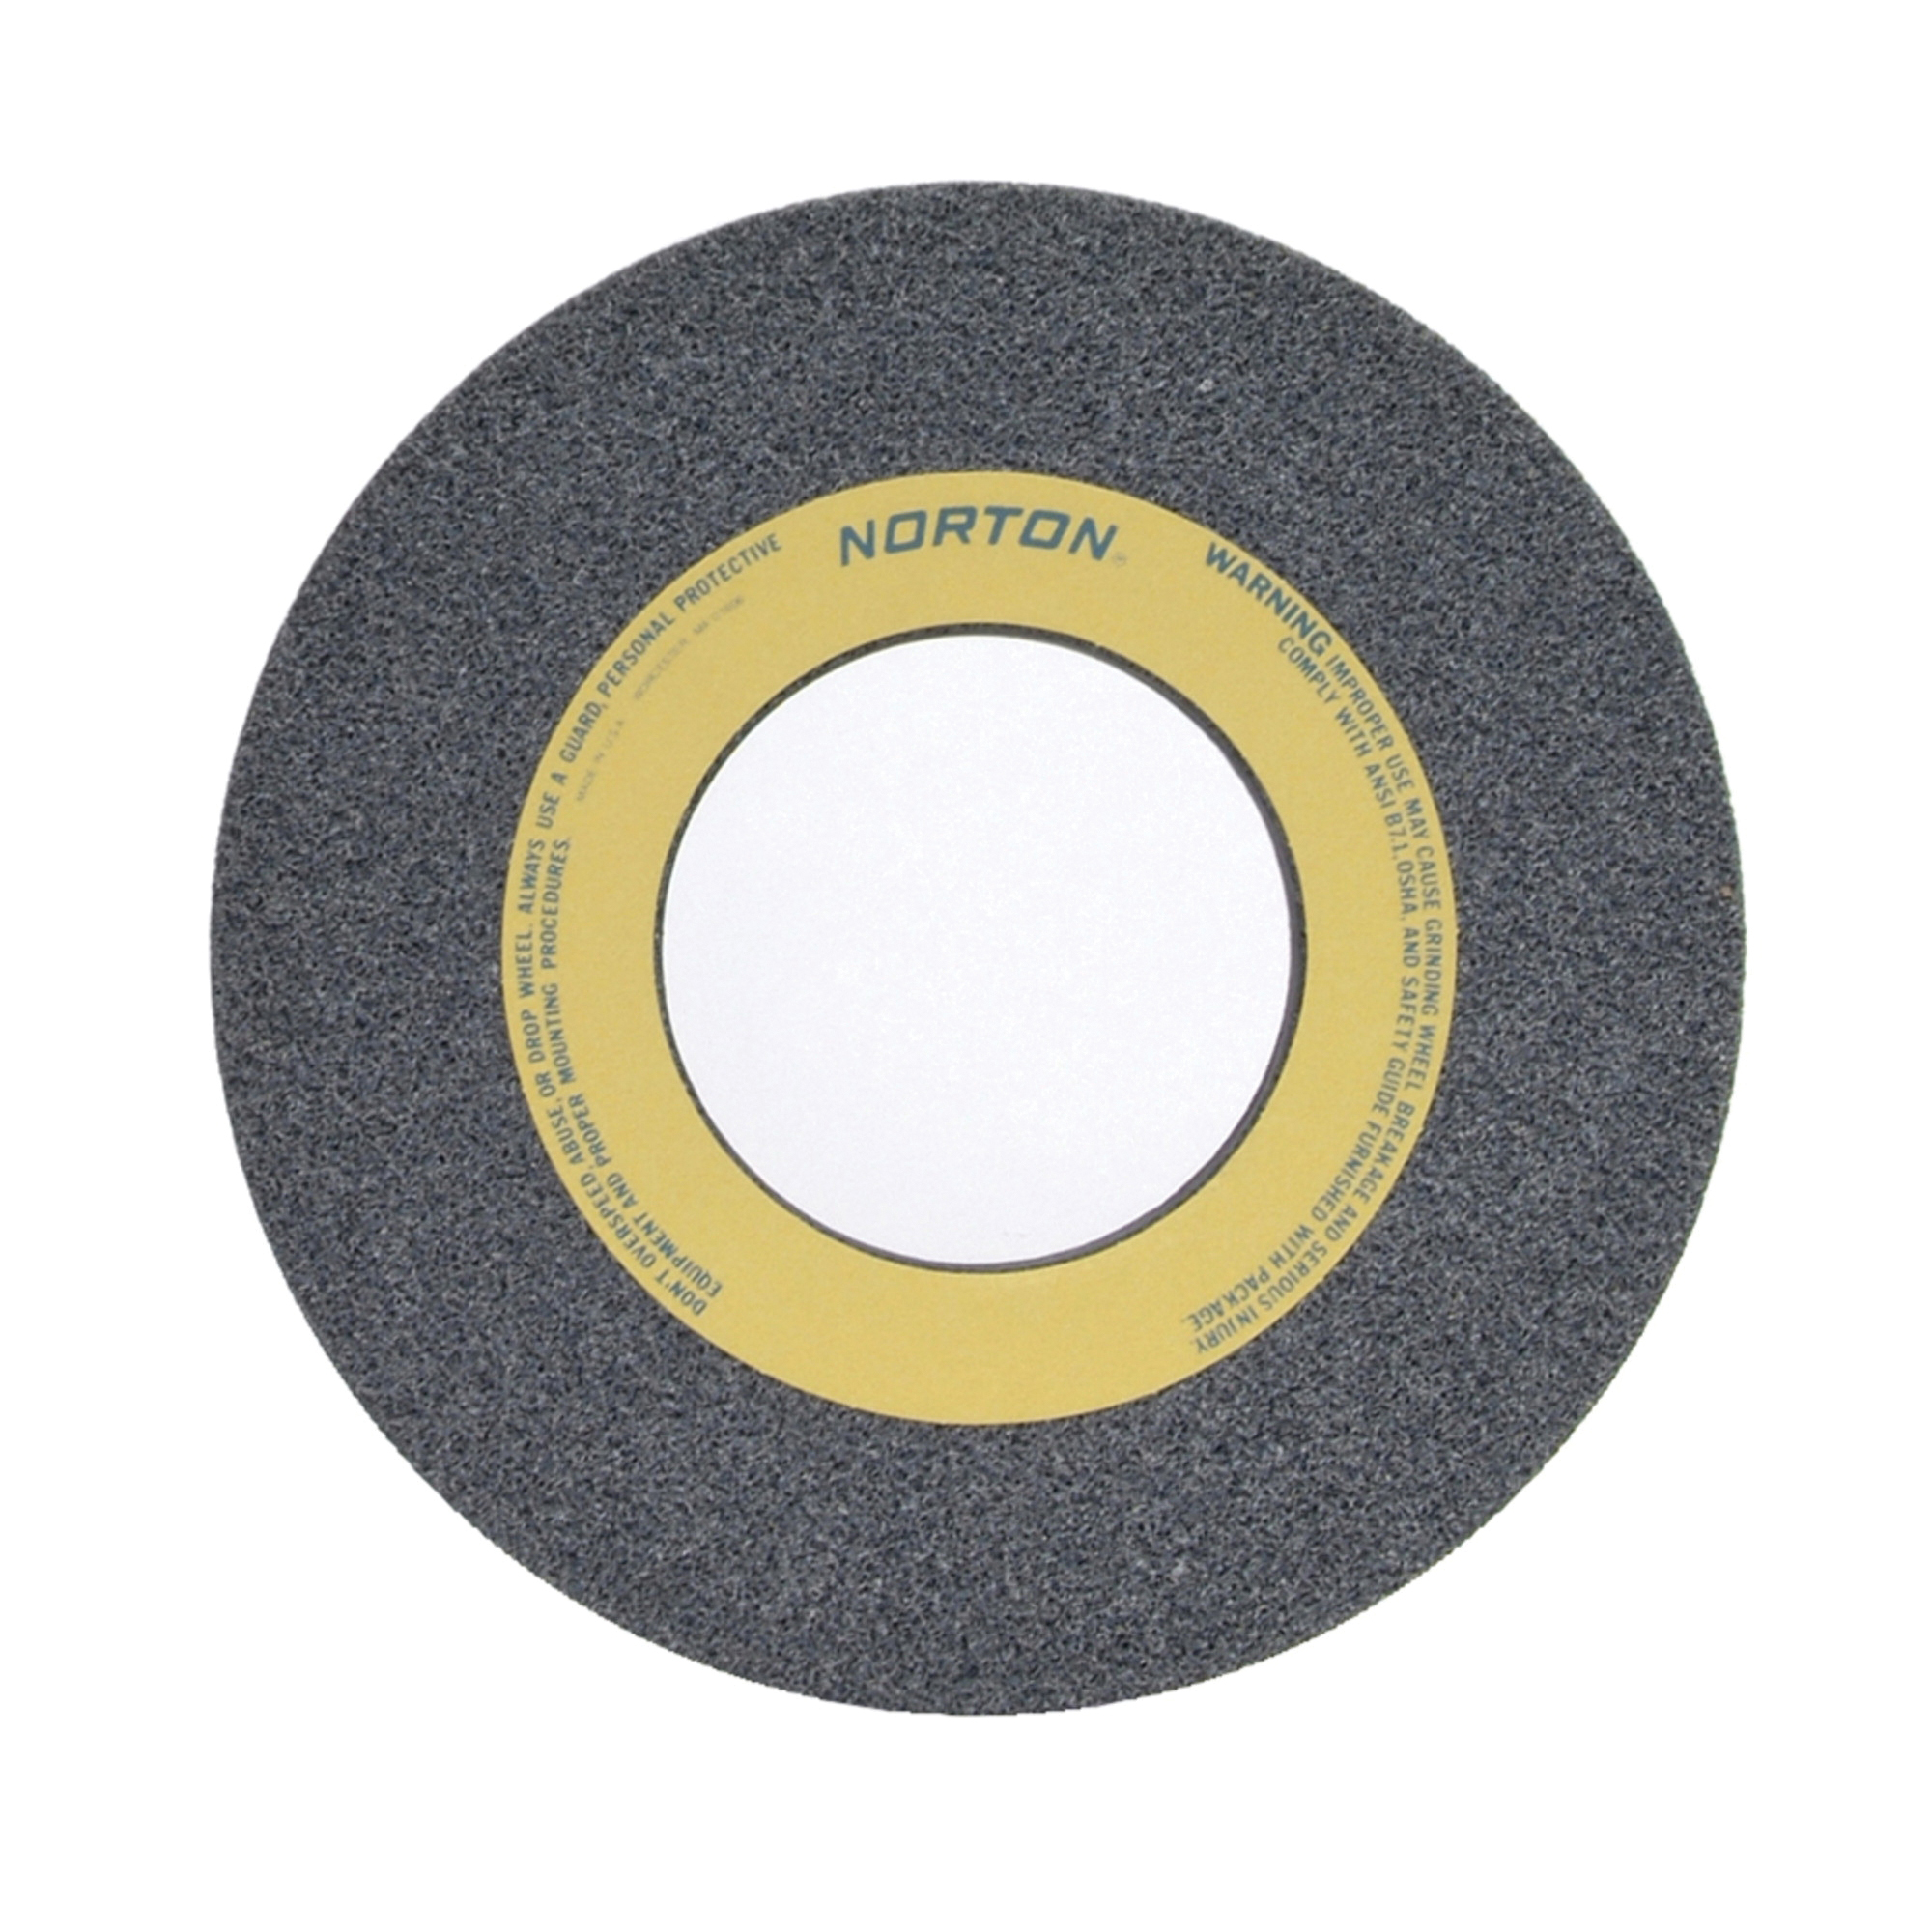 Norton® 66253263128 32A Straight Toolroom Wheel, 12 in Dia x 1-1/2 in THK, 5 in Center Hole, 46 Grit, Aluminum Oxide Abrasive